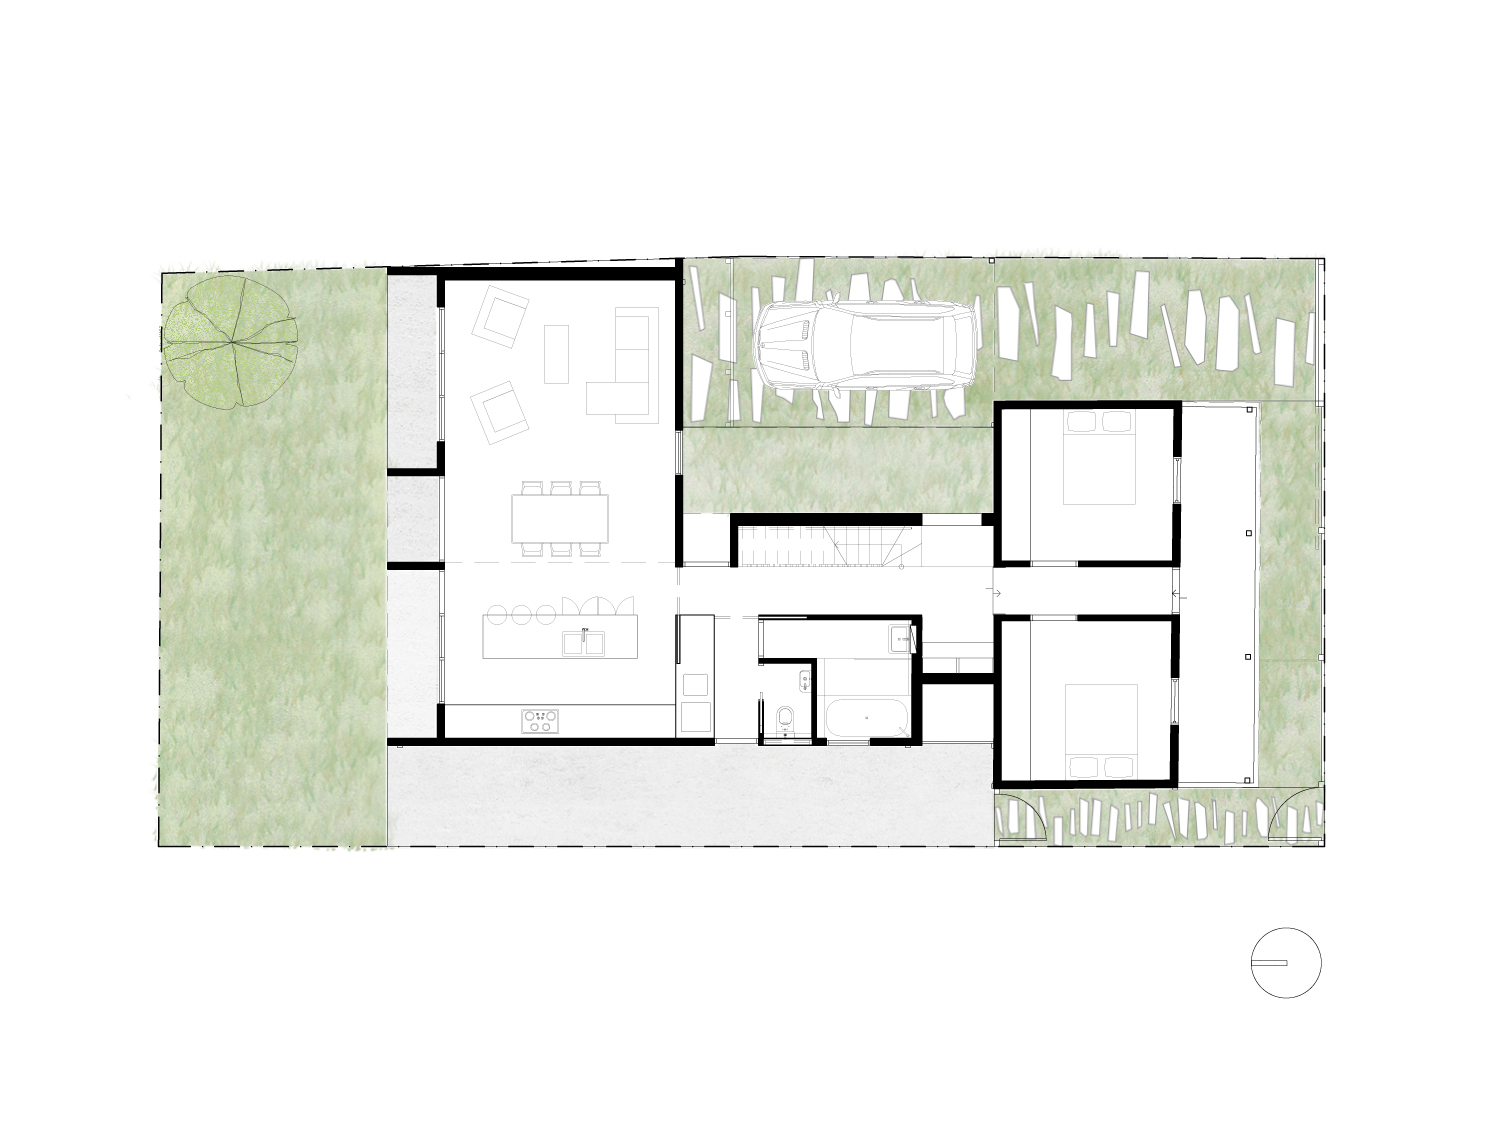 Public_Realm_Lab_House_of_Small_Moments_Ground_Floor_Plan.jpg